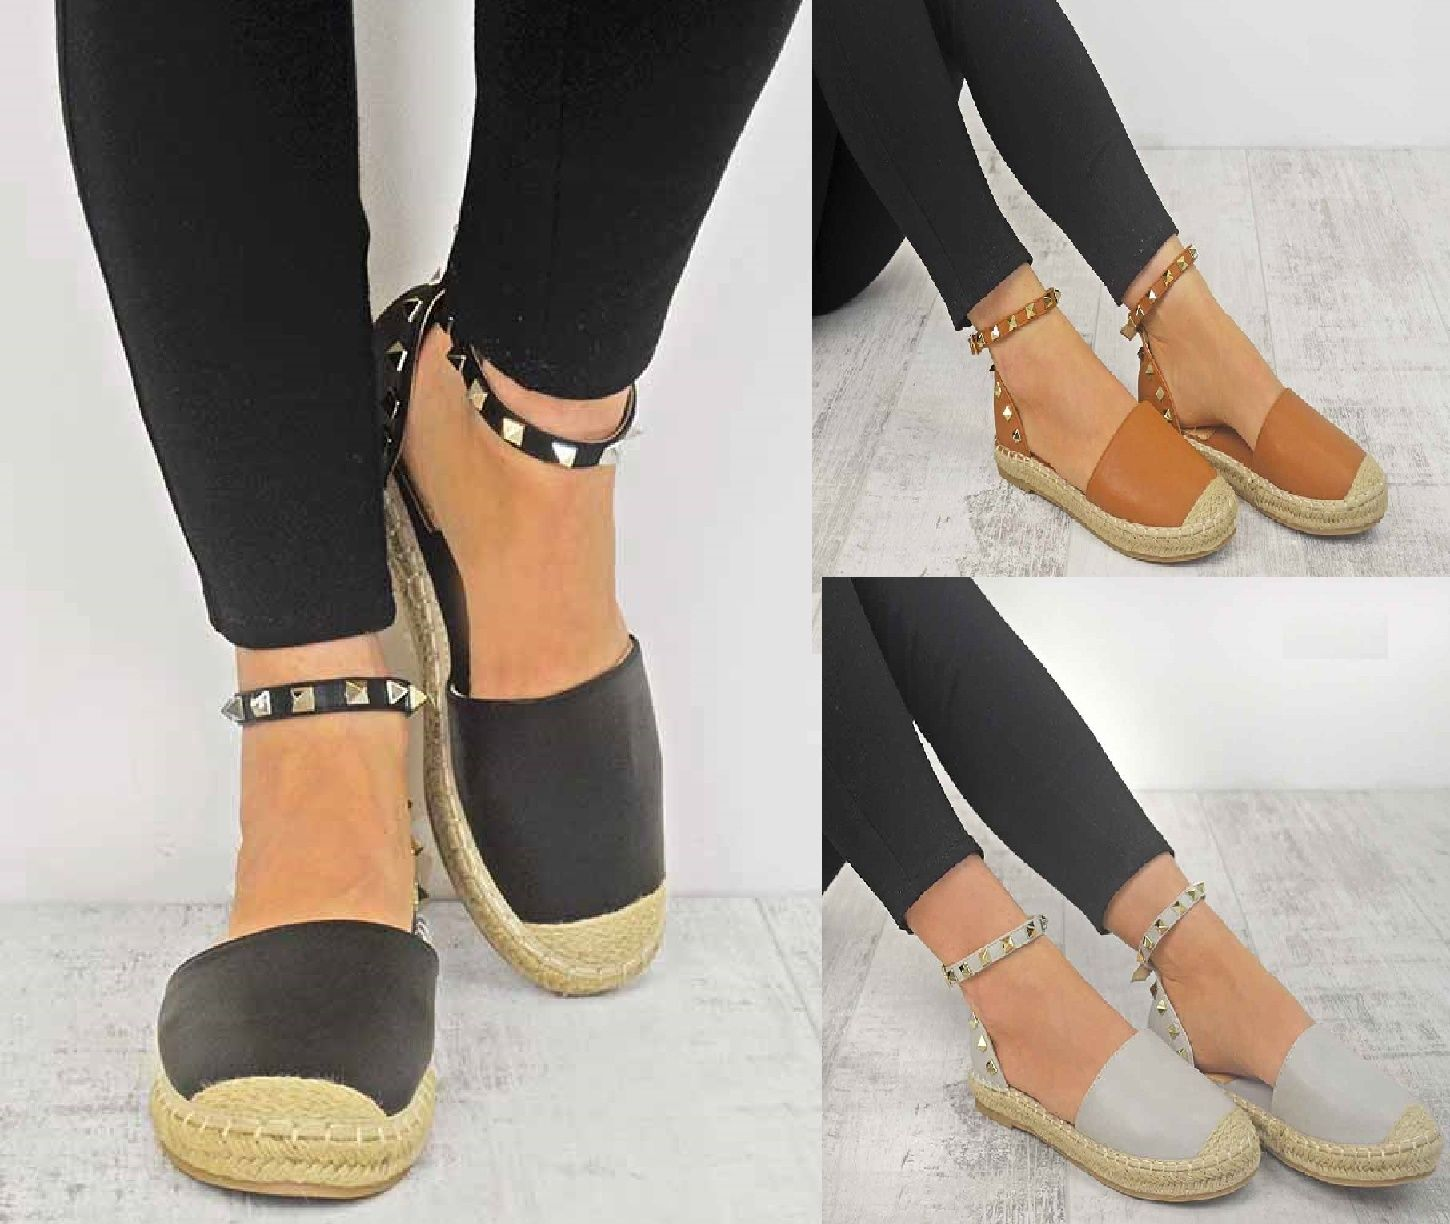 LADIES STUDDED FLAT HEEL COMFY ESPADRILLES WOMENS HOLIDAY SANDALS SHOES SIZE 3-8